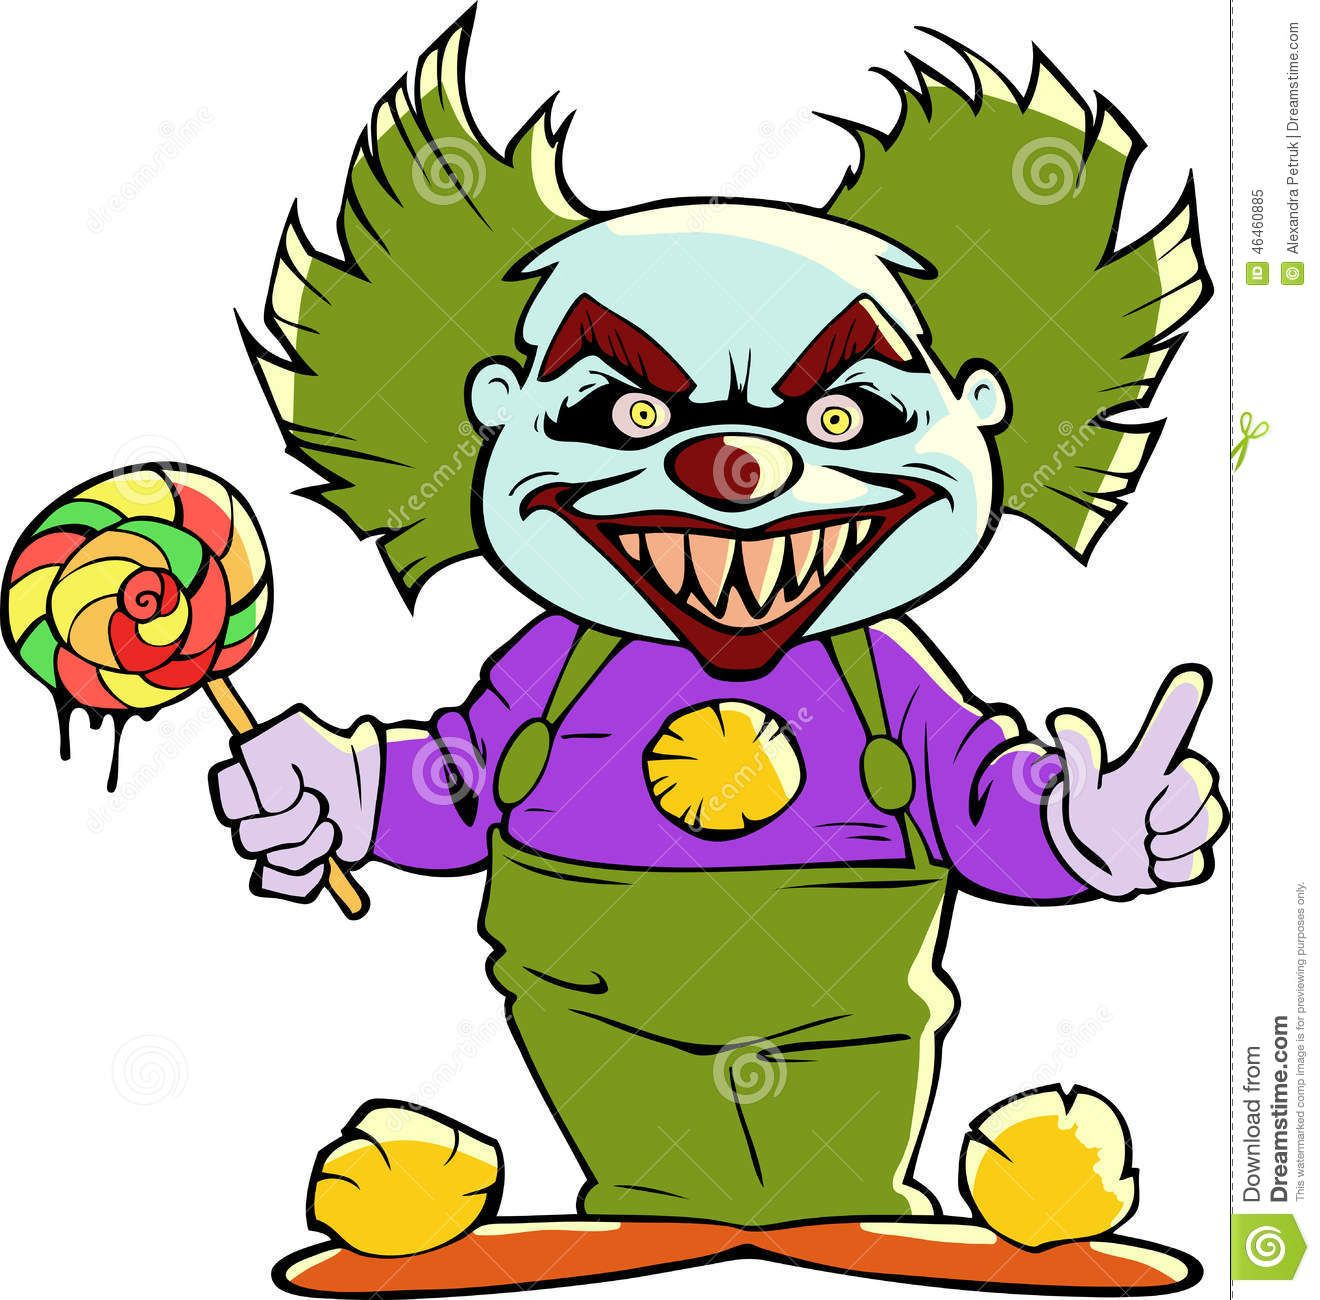 Cartoon Scary Evil Clown Halloween Illustration 46460885 Jpg 1320